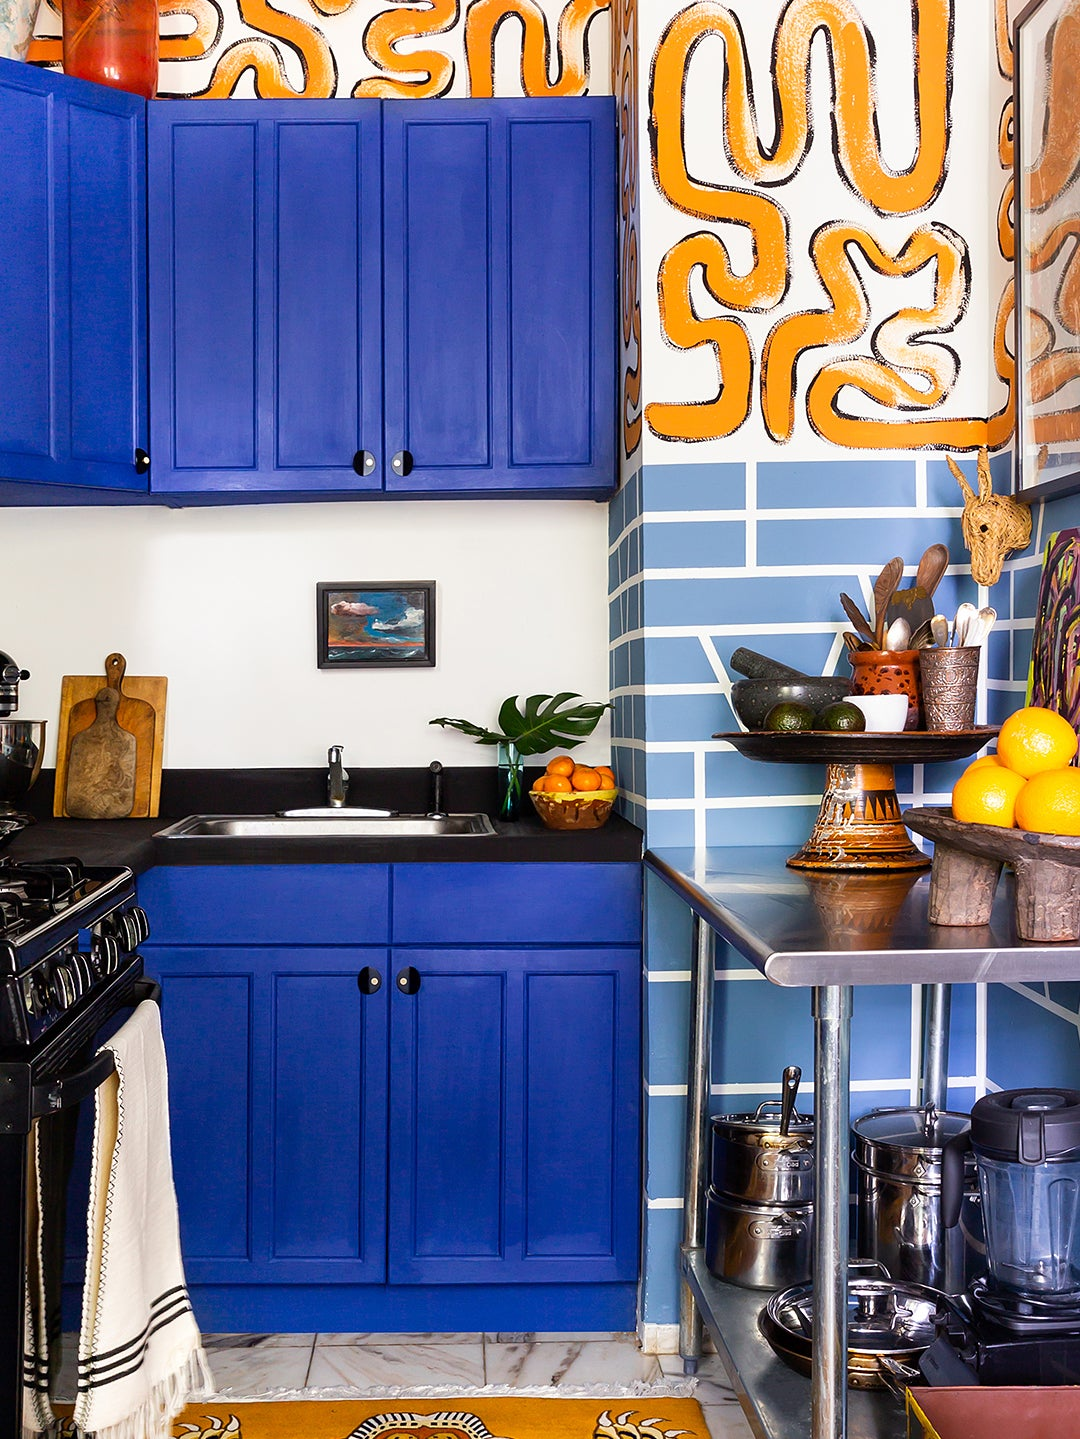 royal blue kitchen cabinets with orange mural